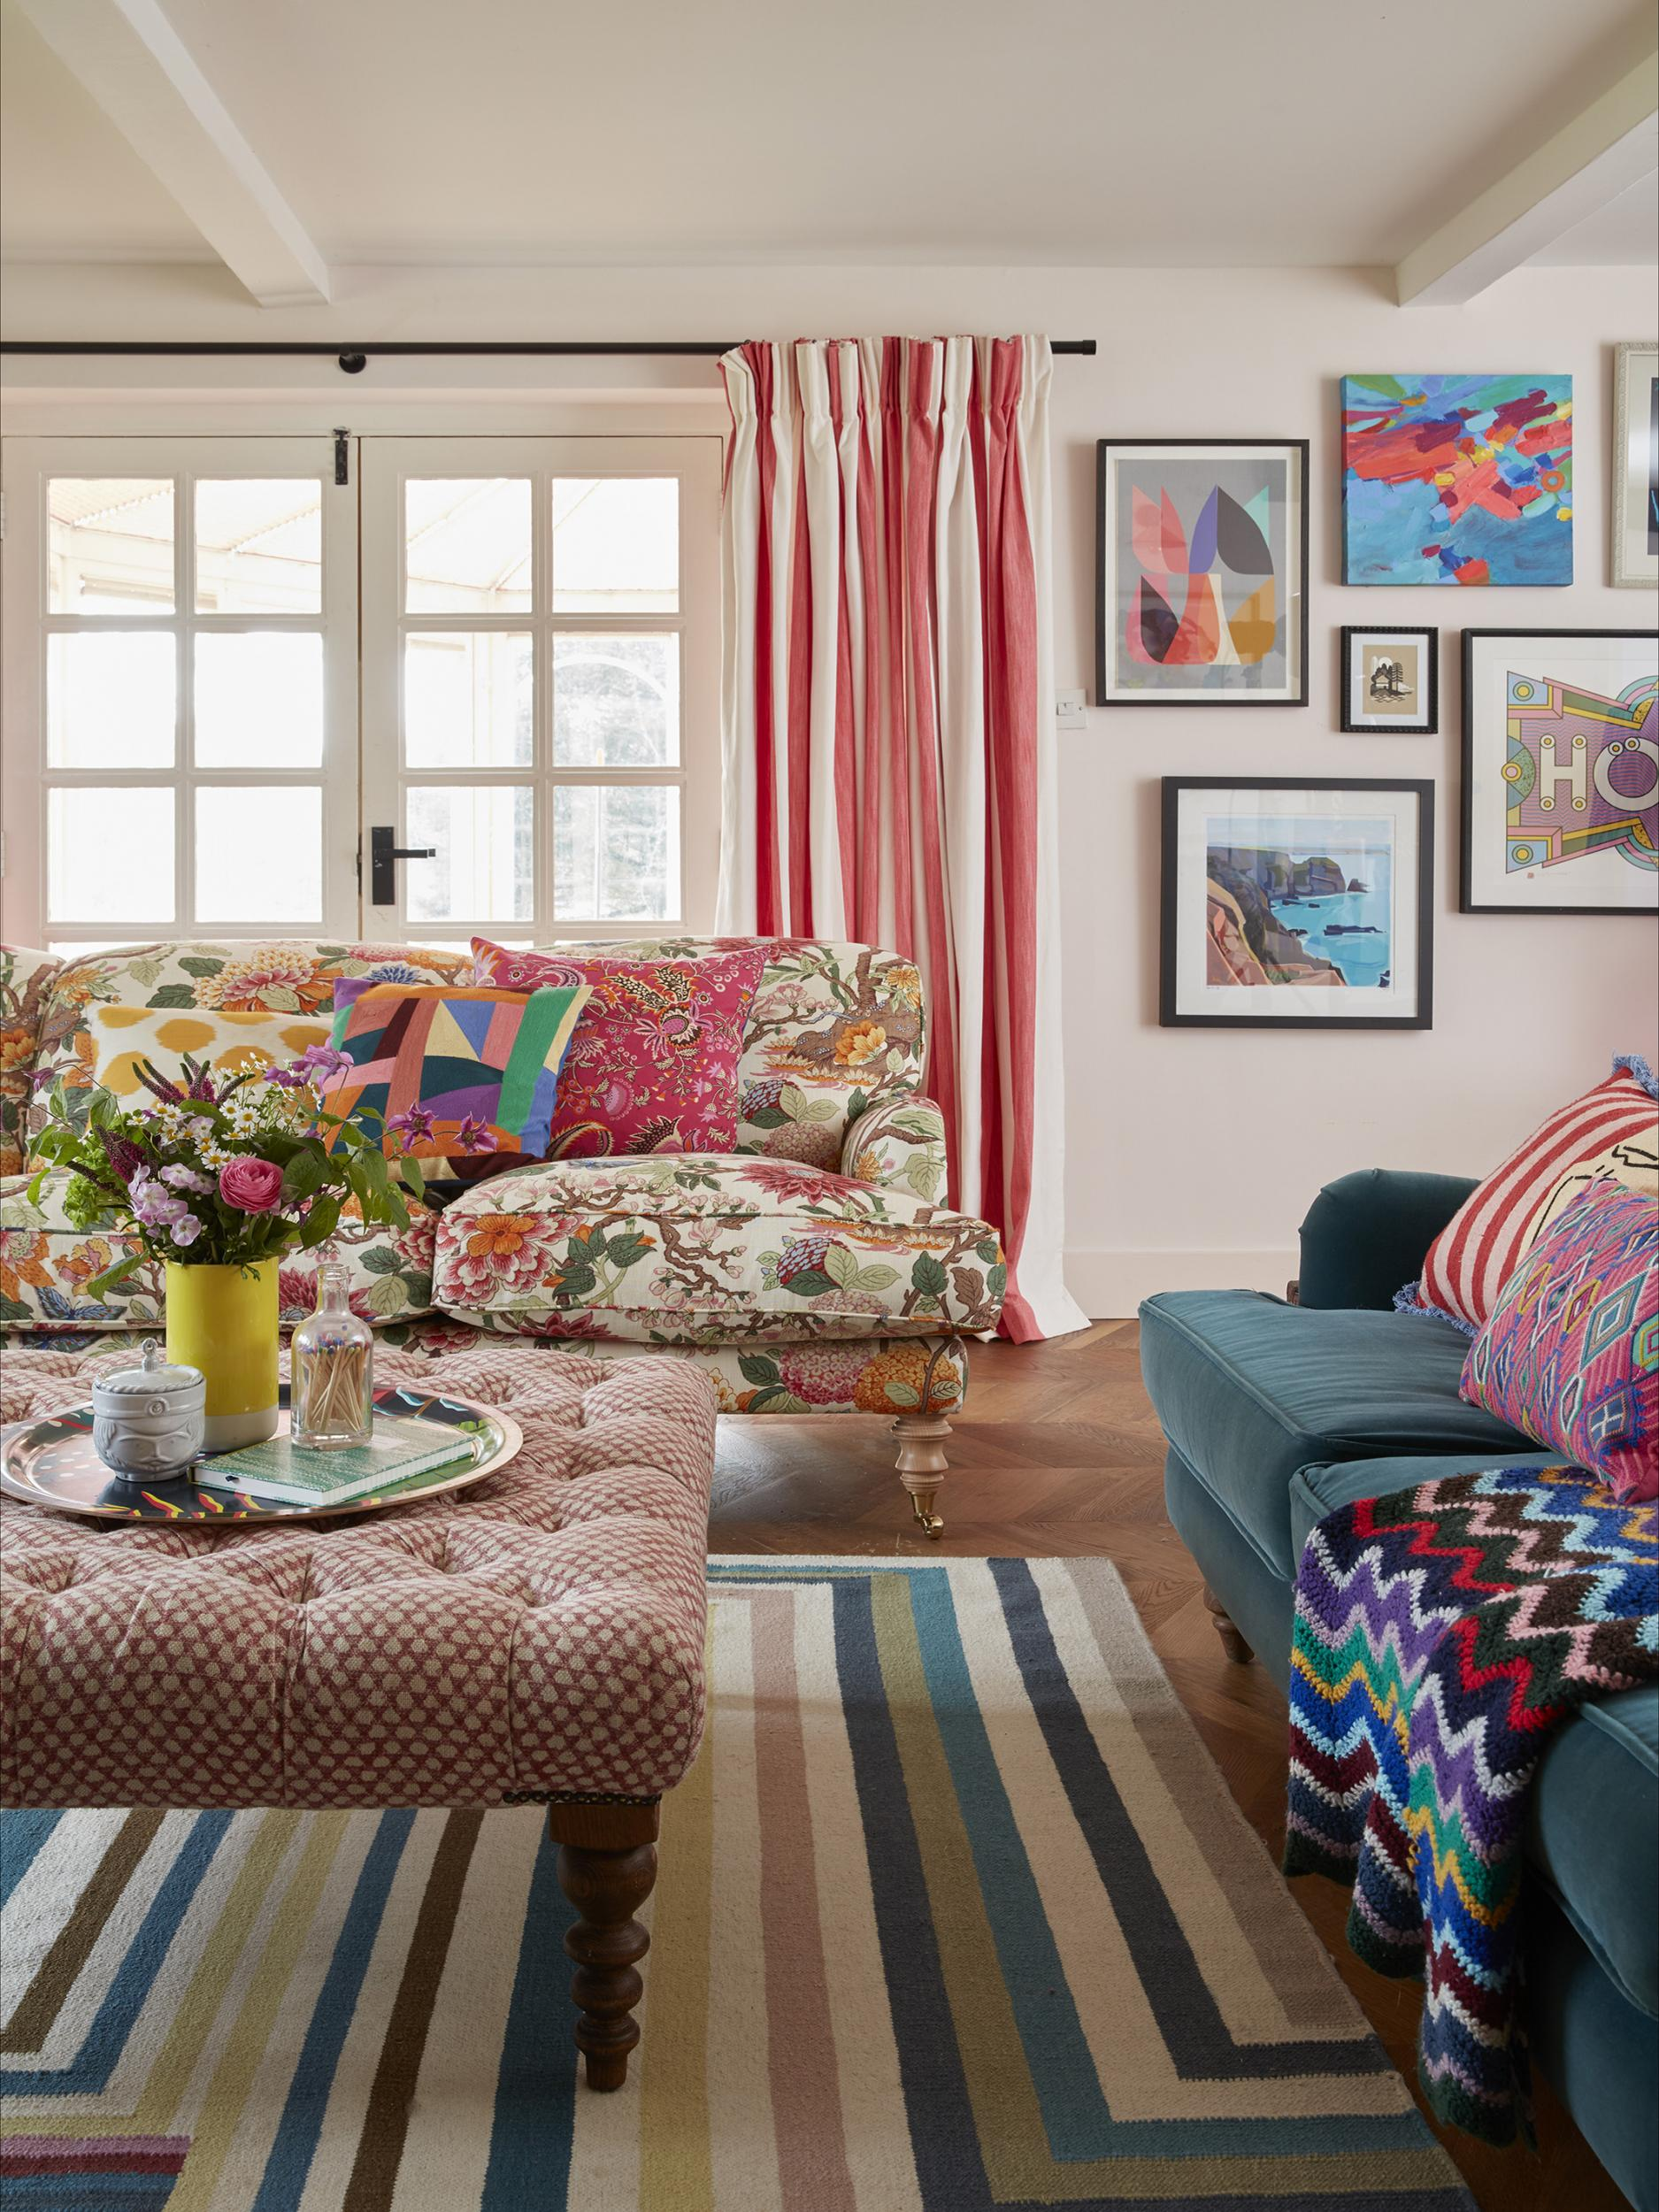 It's time to give your sofa the TLC it needs | The Independent